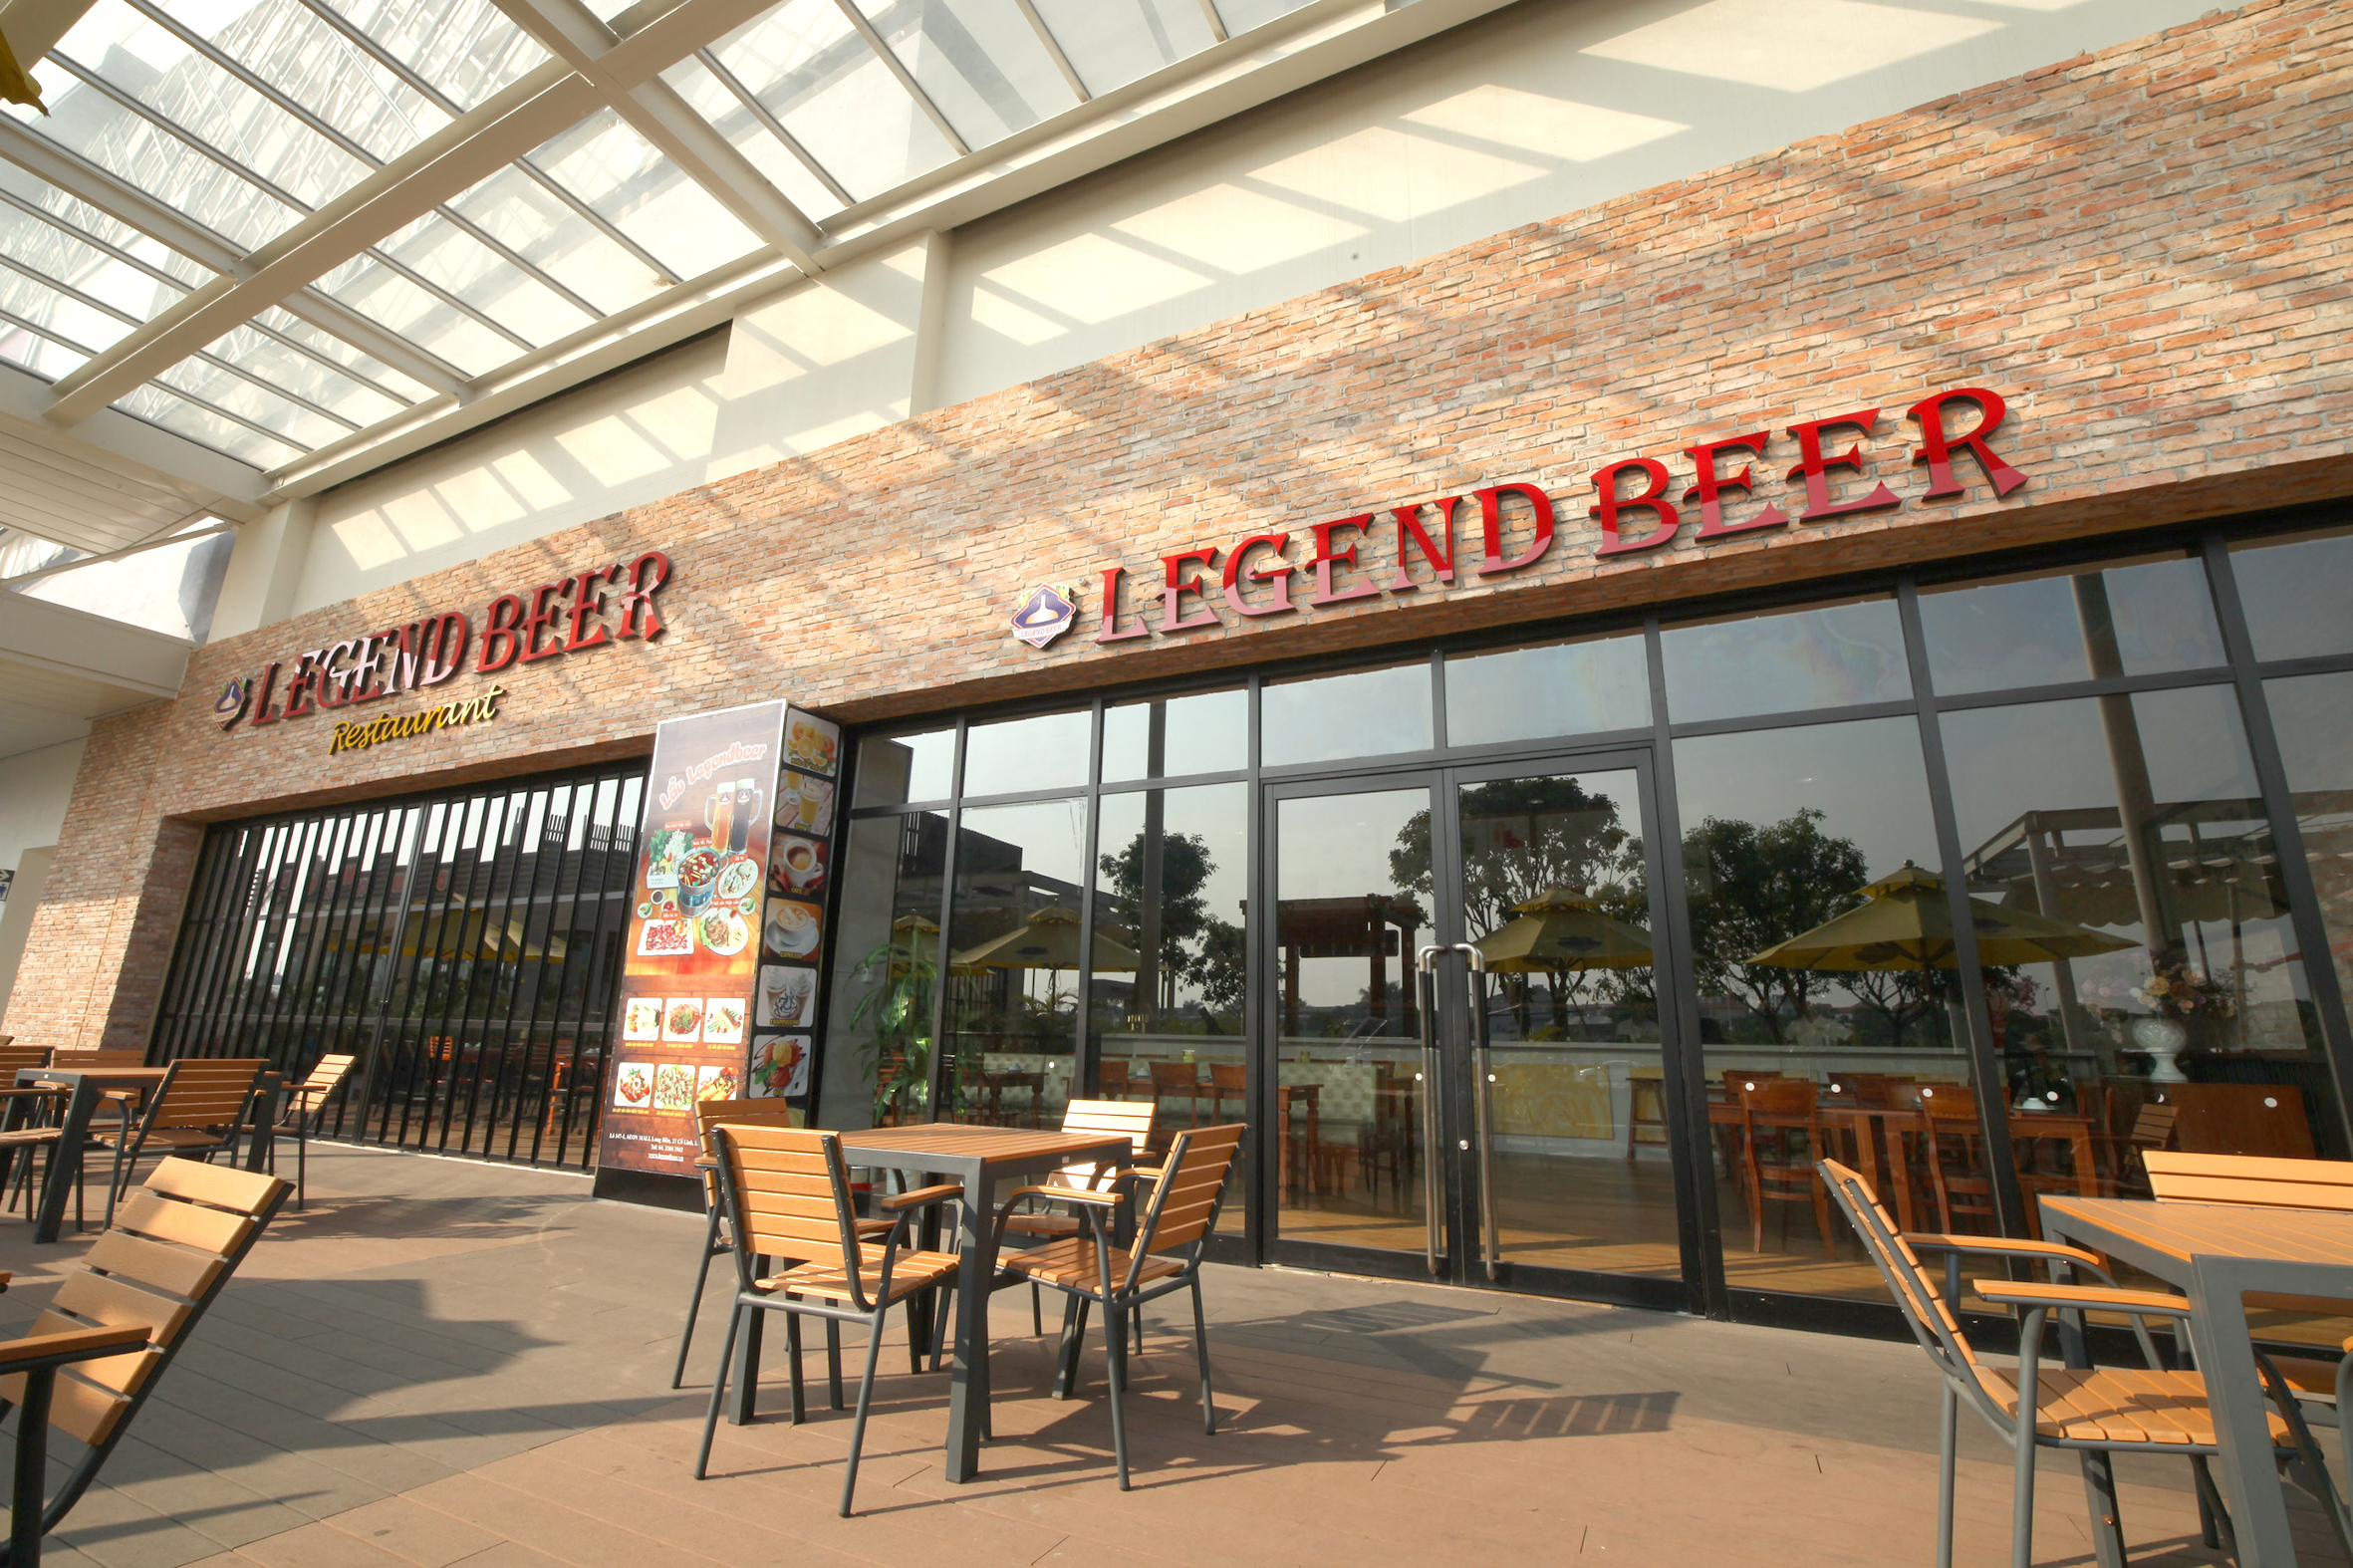 Legend Beer restaurant